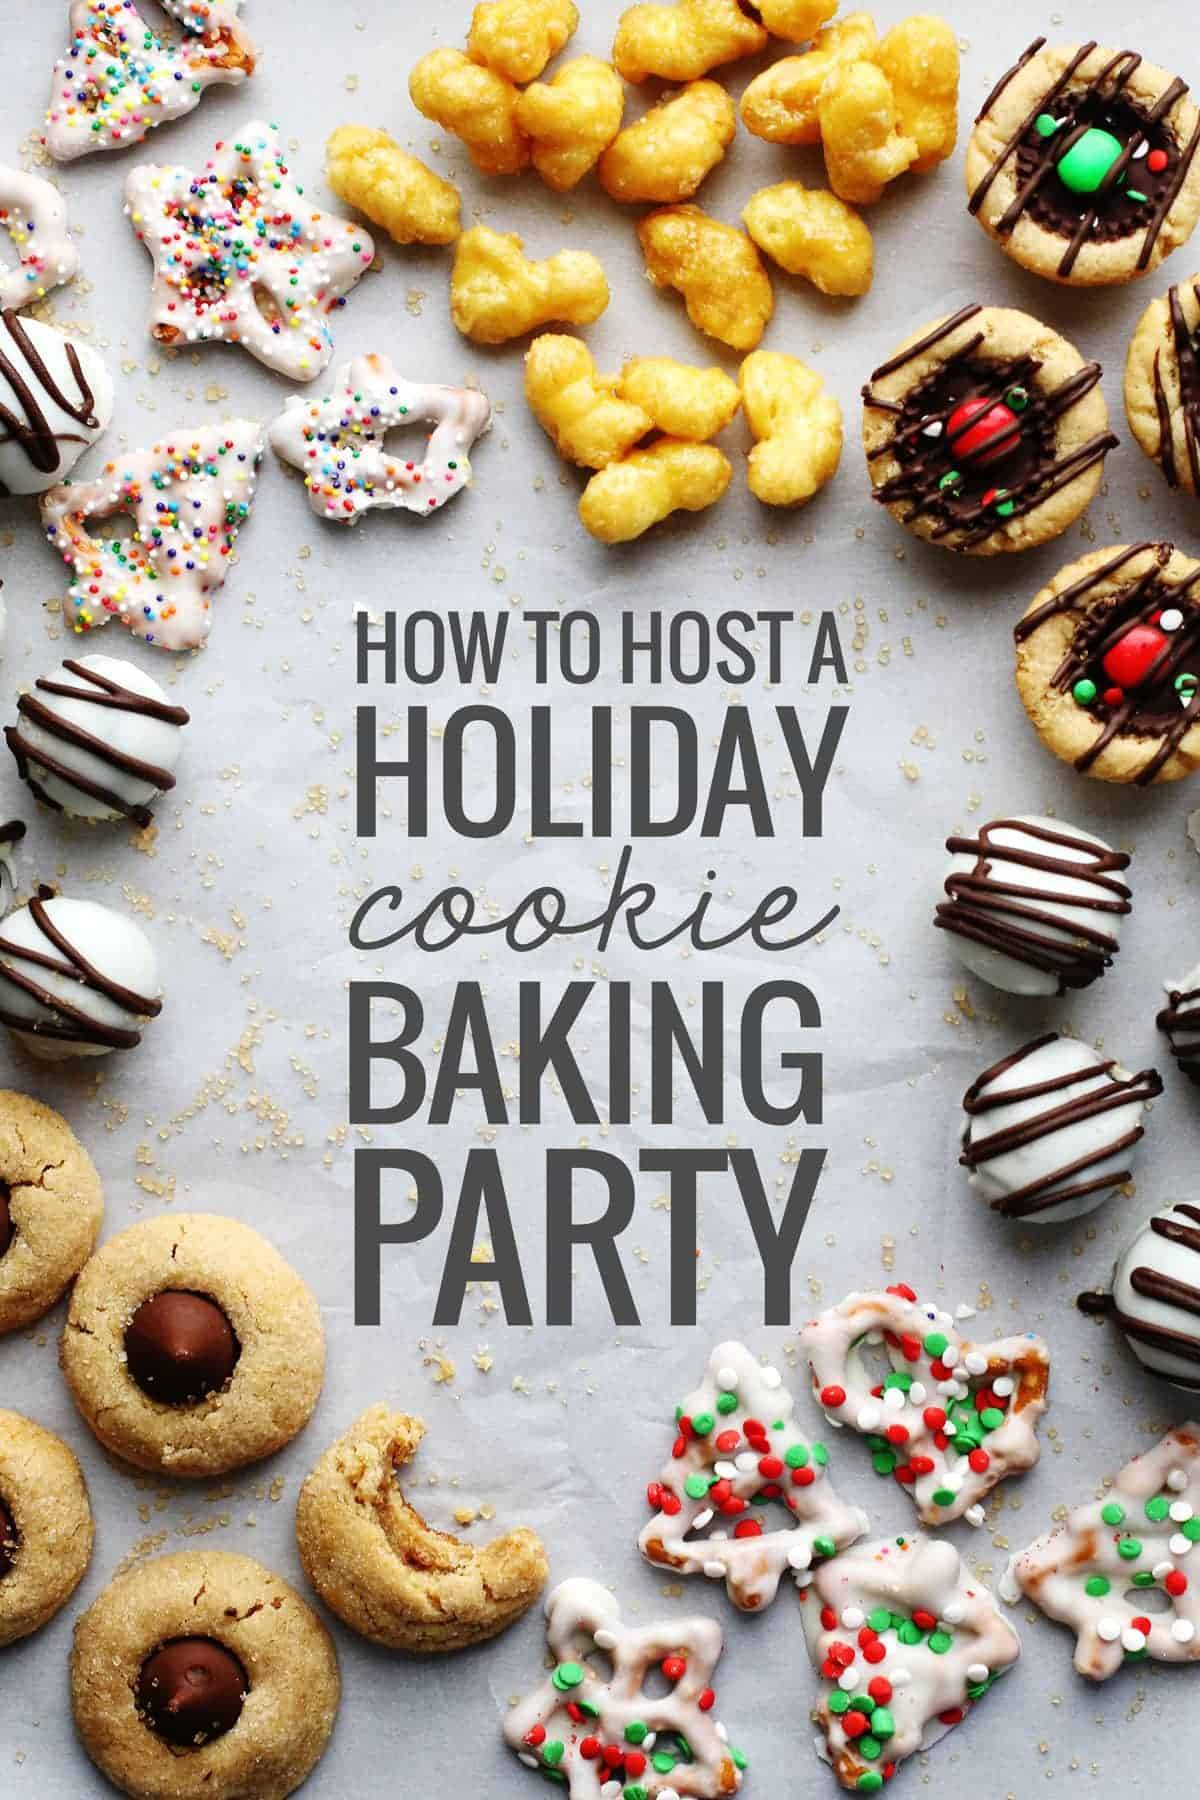 How To Host A Holiday Cookie Baking Party Recipe